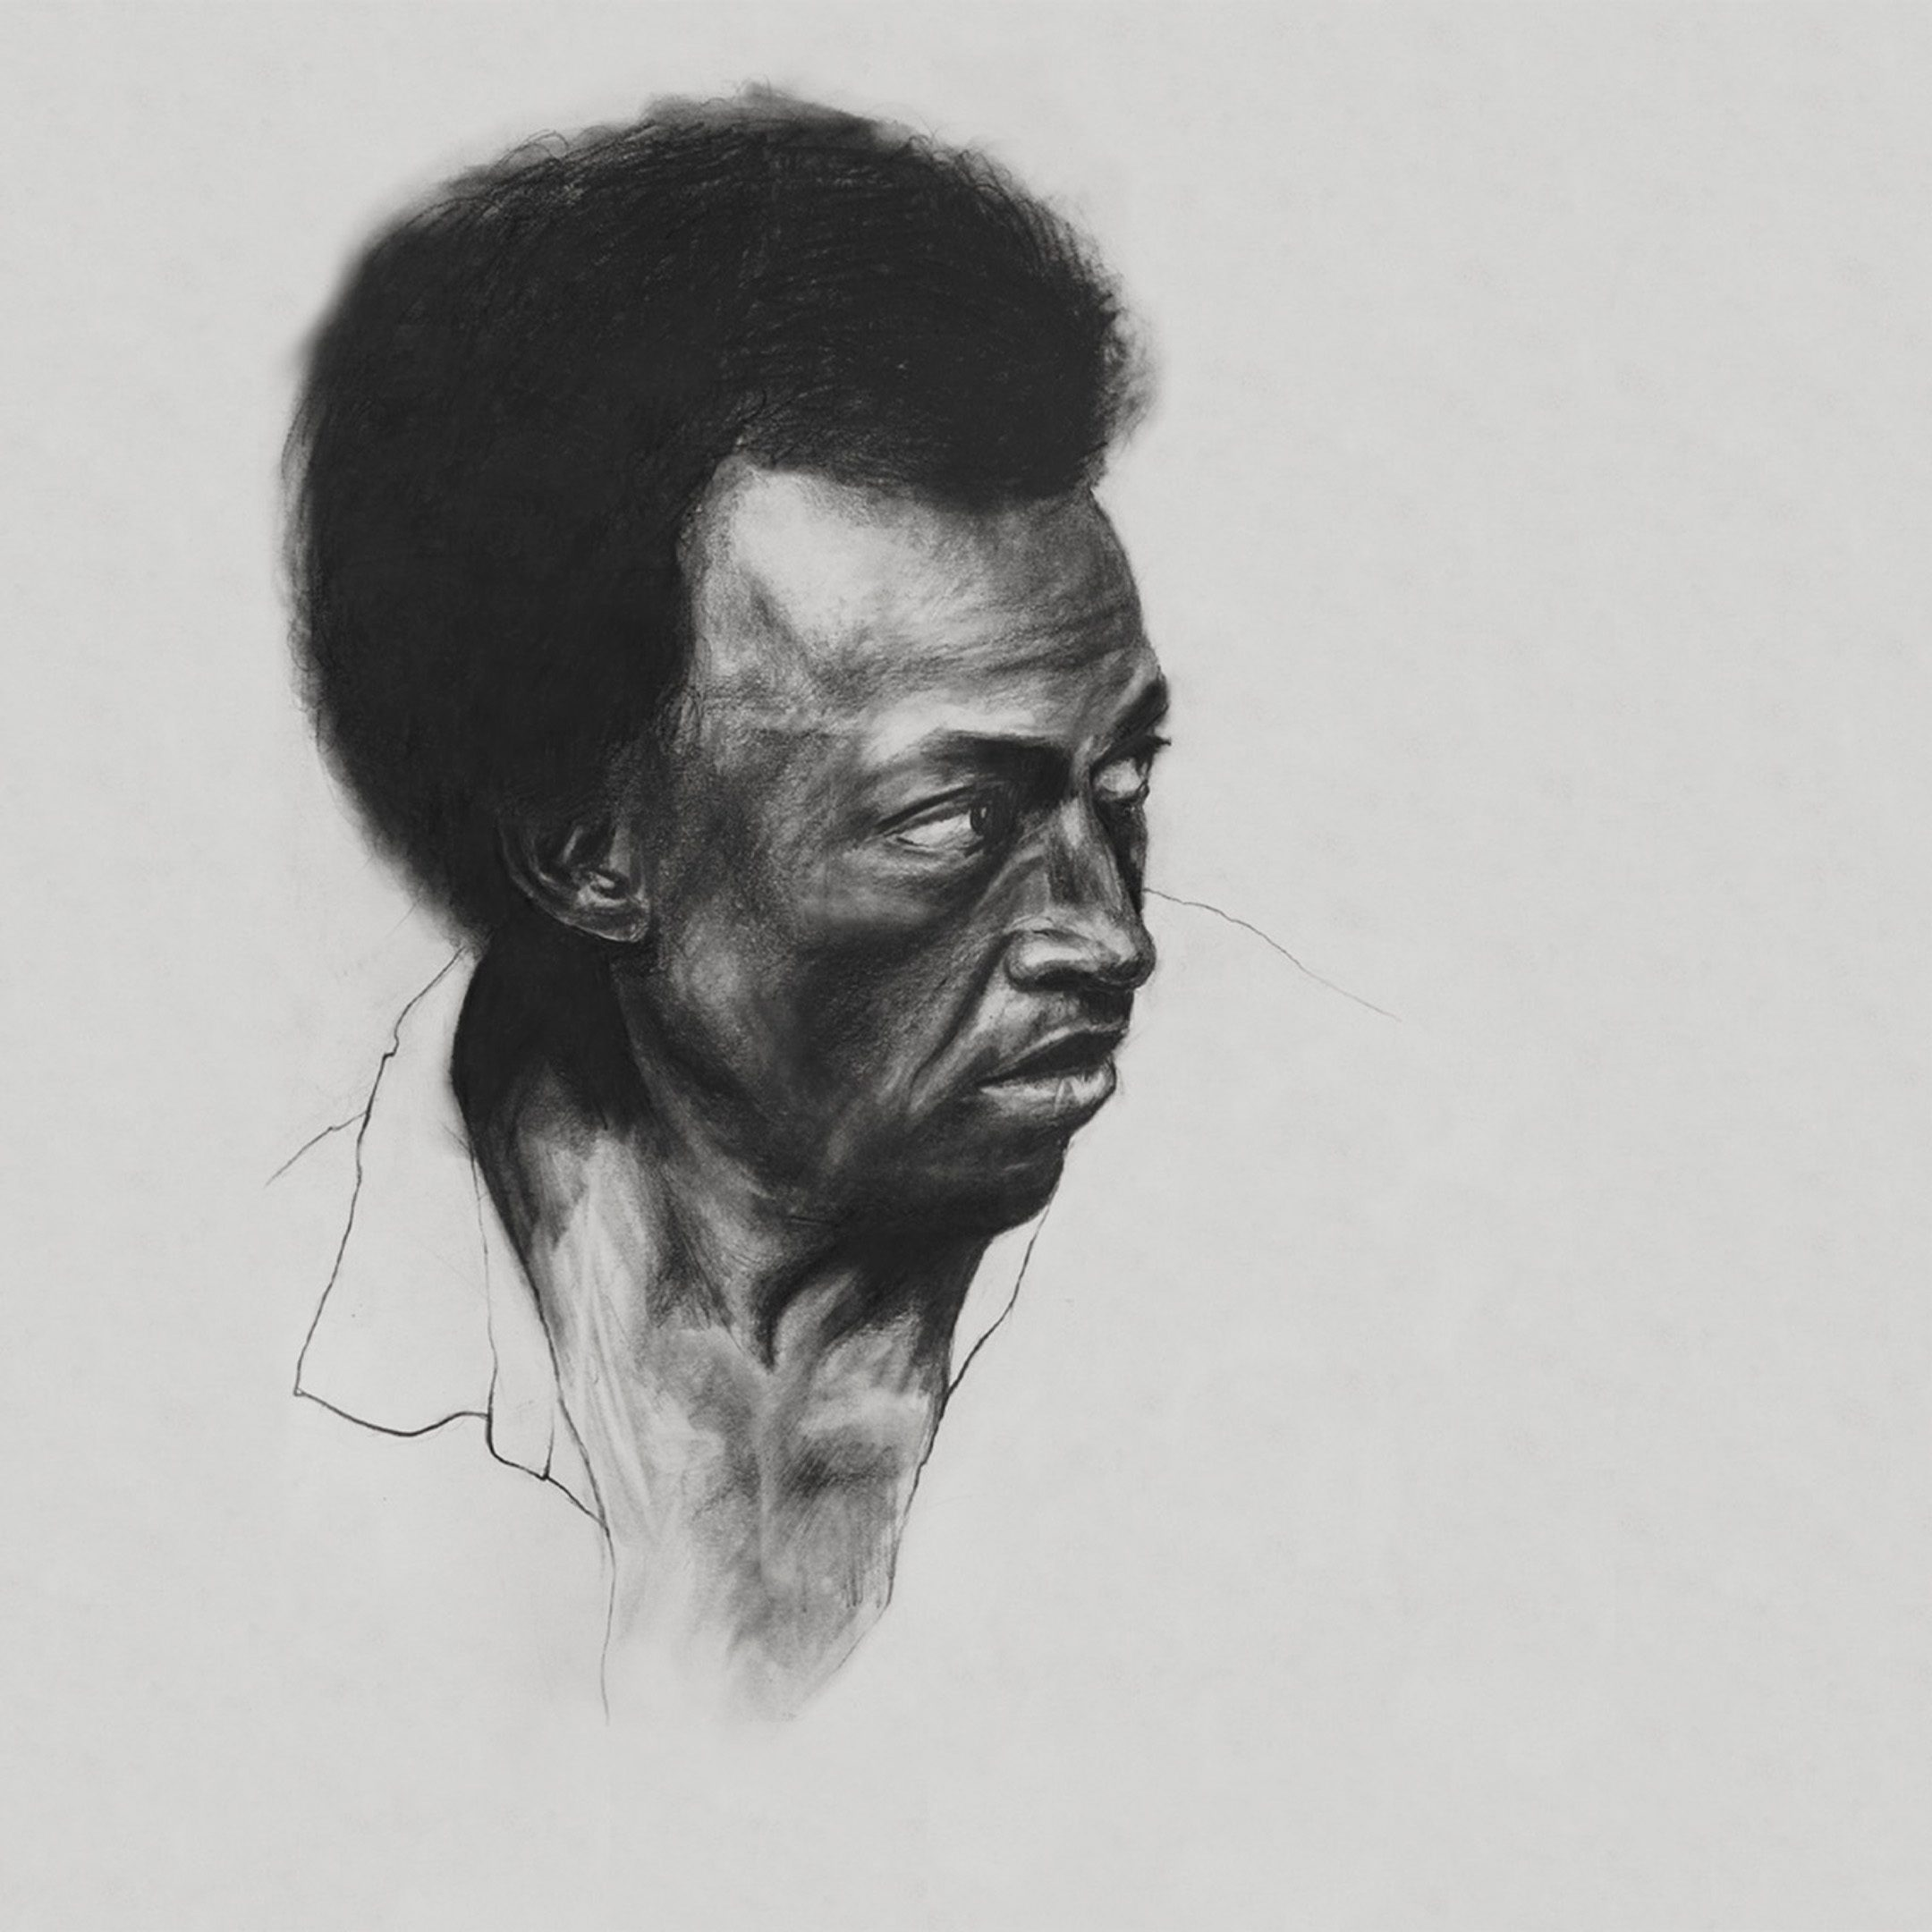 miles davis illustration